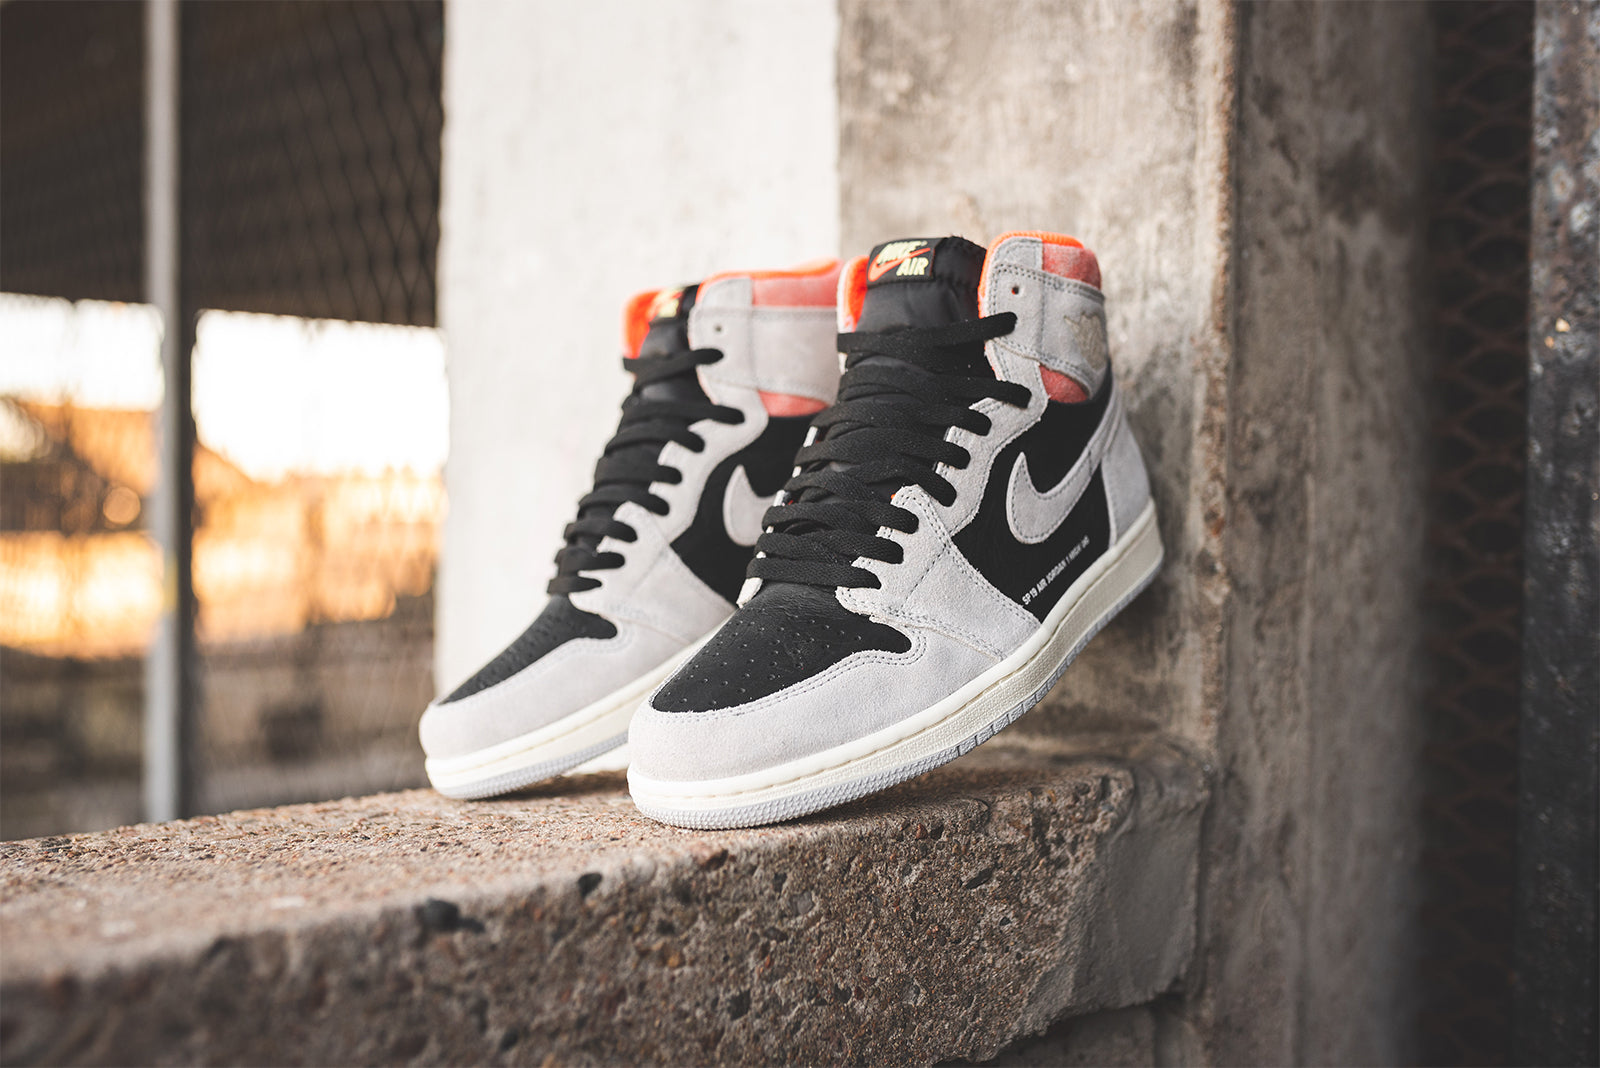 f79fbb5c5a0 Nike Air Jordan 1 Retro High OG – Hanon